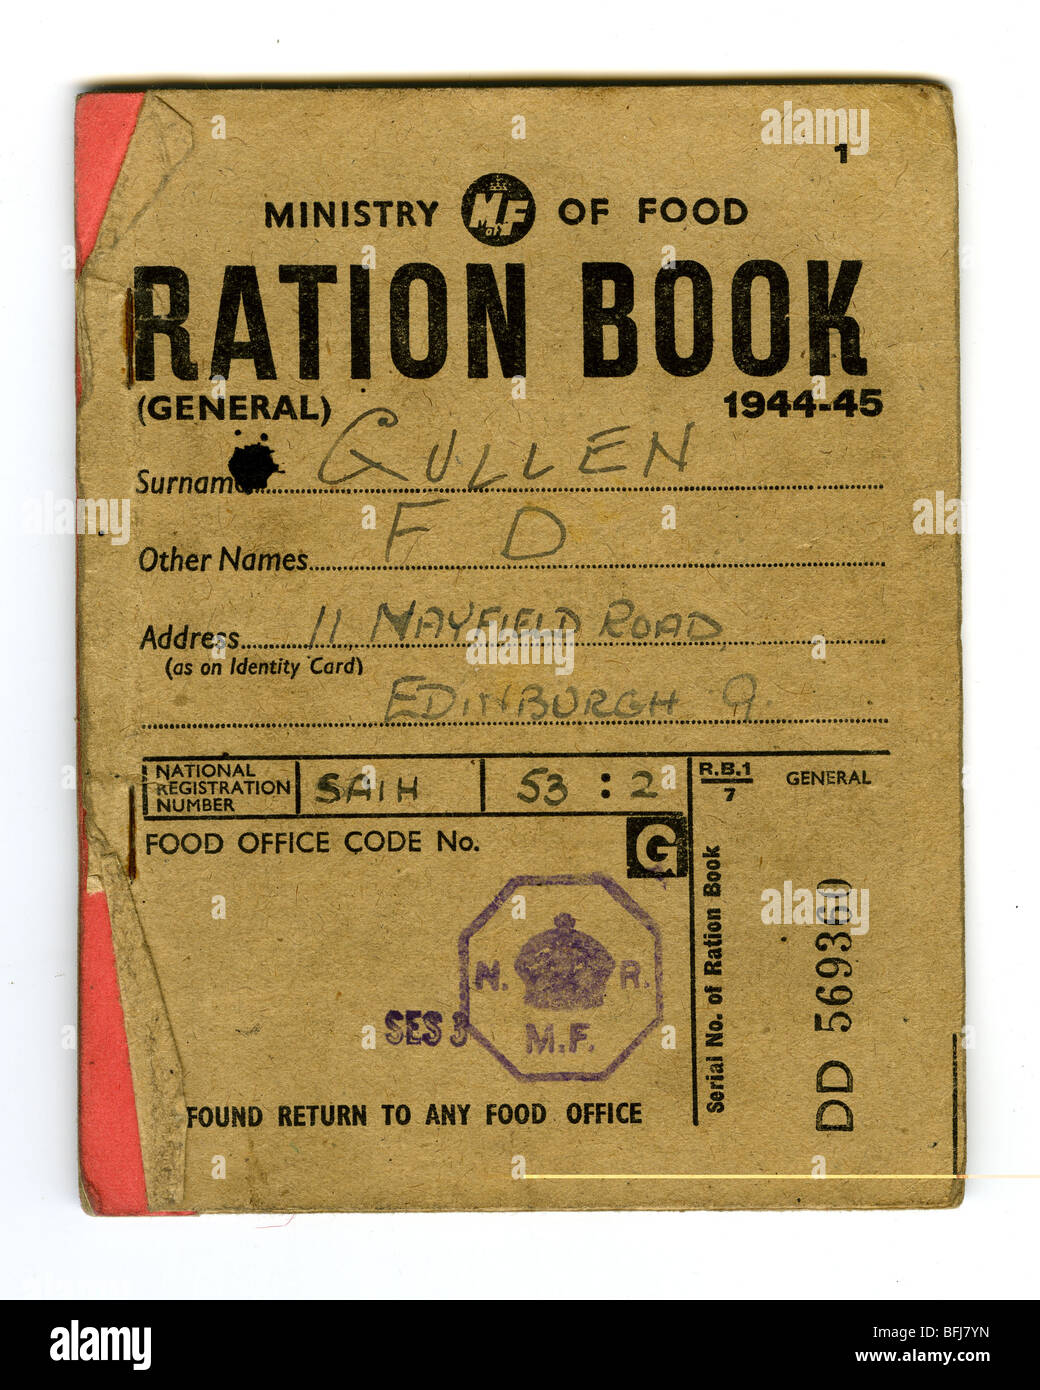 BRITISH RATION BOOK 1944-45 issued by the Ministry of Food - Stock Image